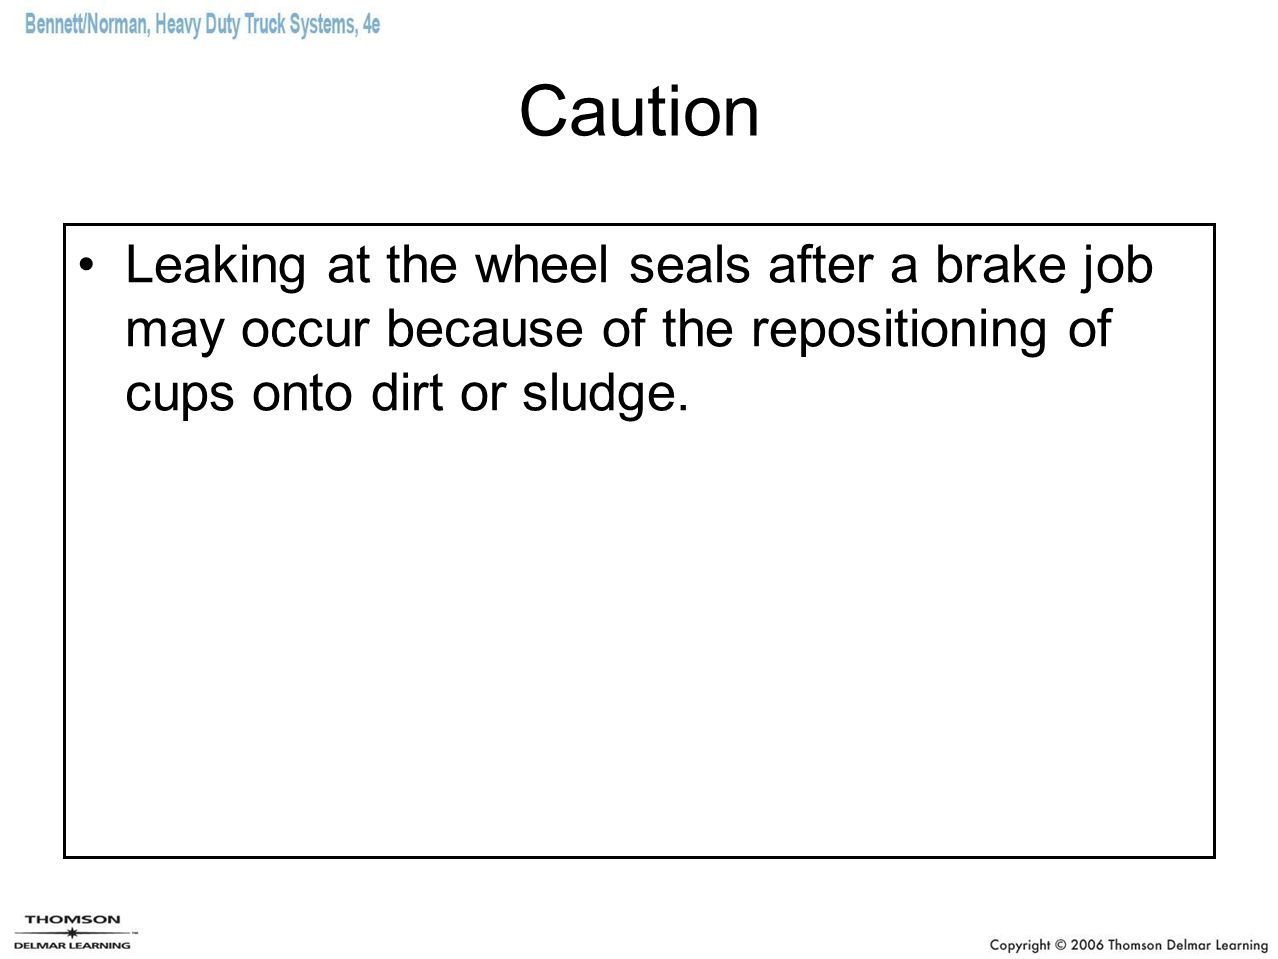 Caution Leaking at the wheel seals after a brake job may occur because of the repositioning of cups onto dirt or sludge.